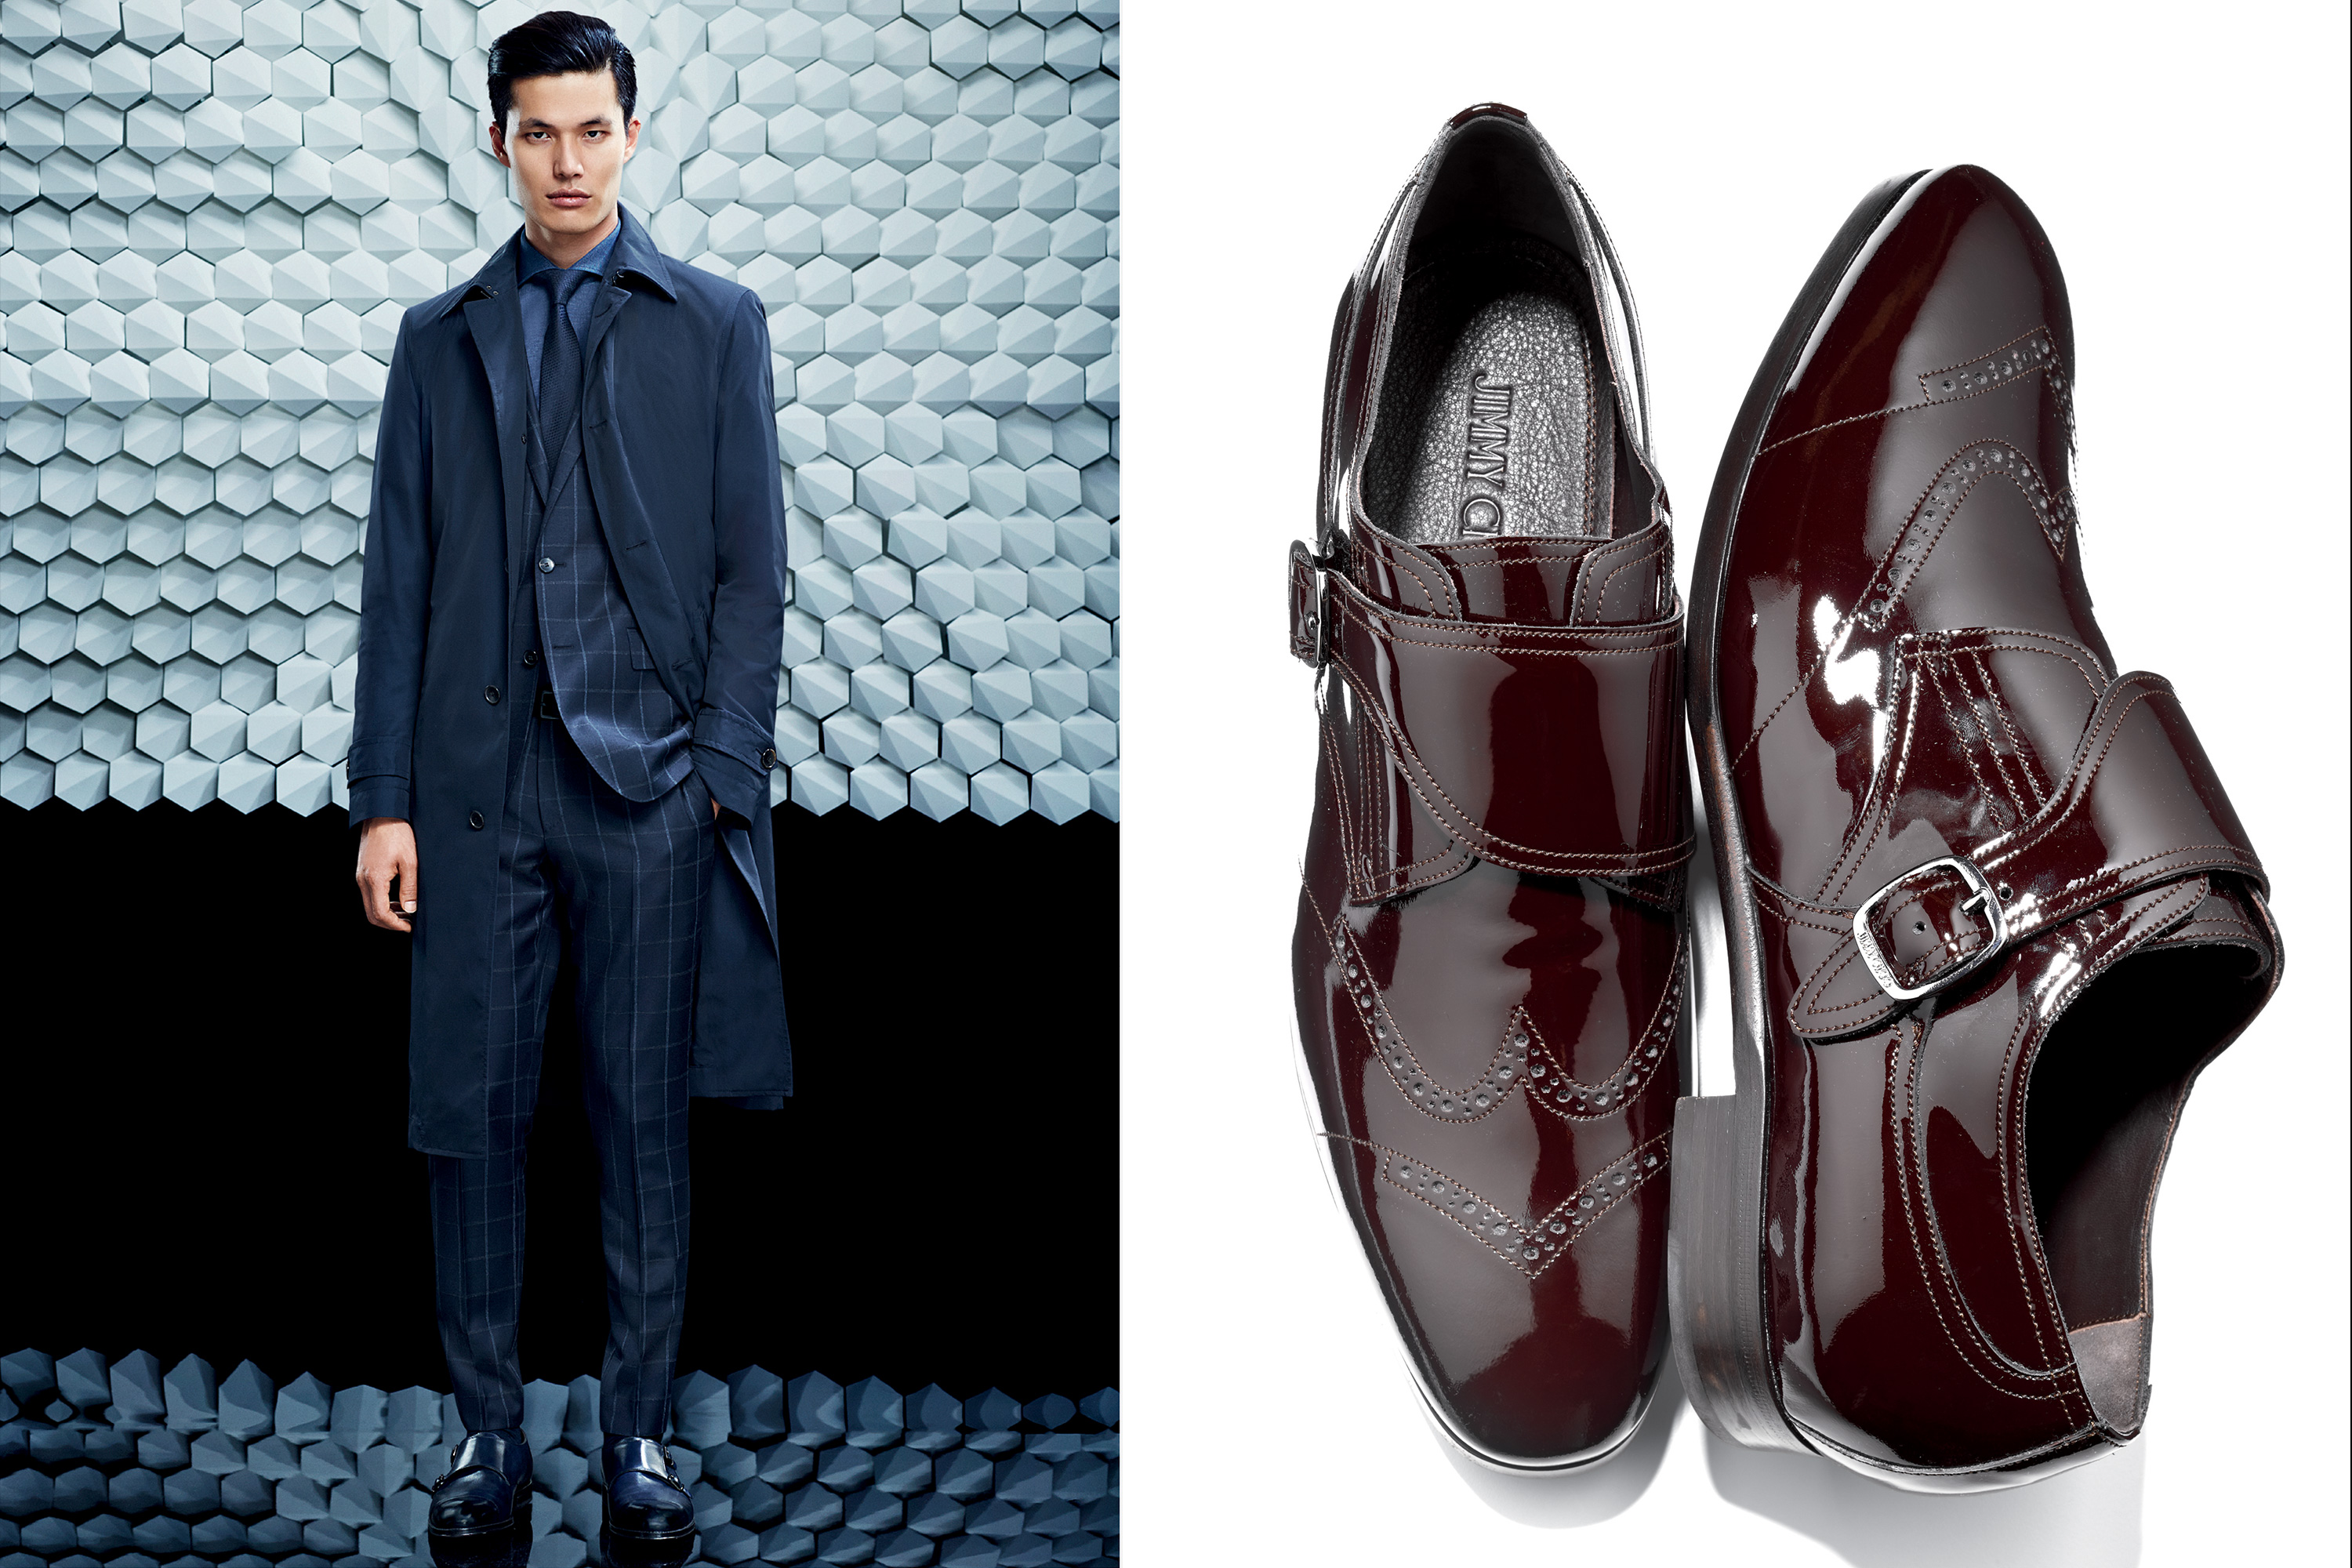 Left: Boss Coat, $845; Boss Suit, $1,095; Boss Shirt, $235; Boss Neckwear, $95; Boss Shoes, $445; Right: Jimmy Choo Etched Derby Shoes, $825